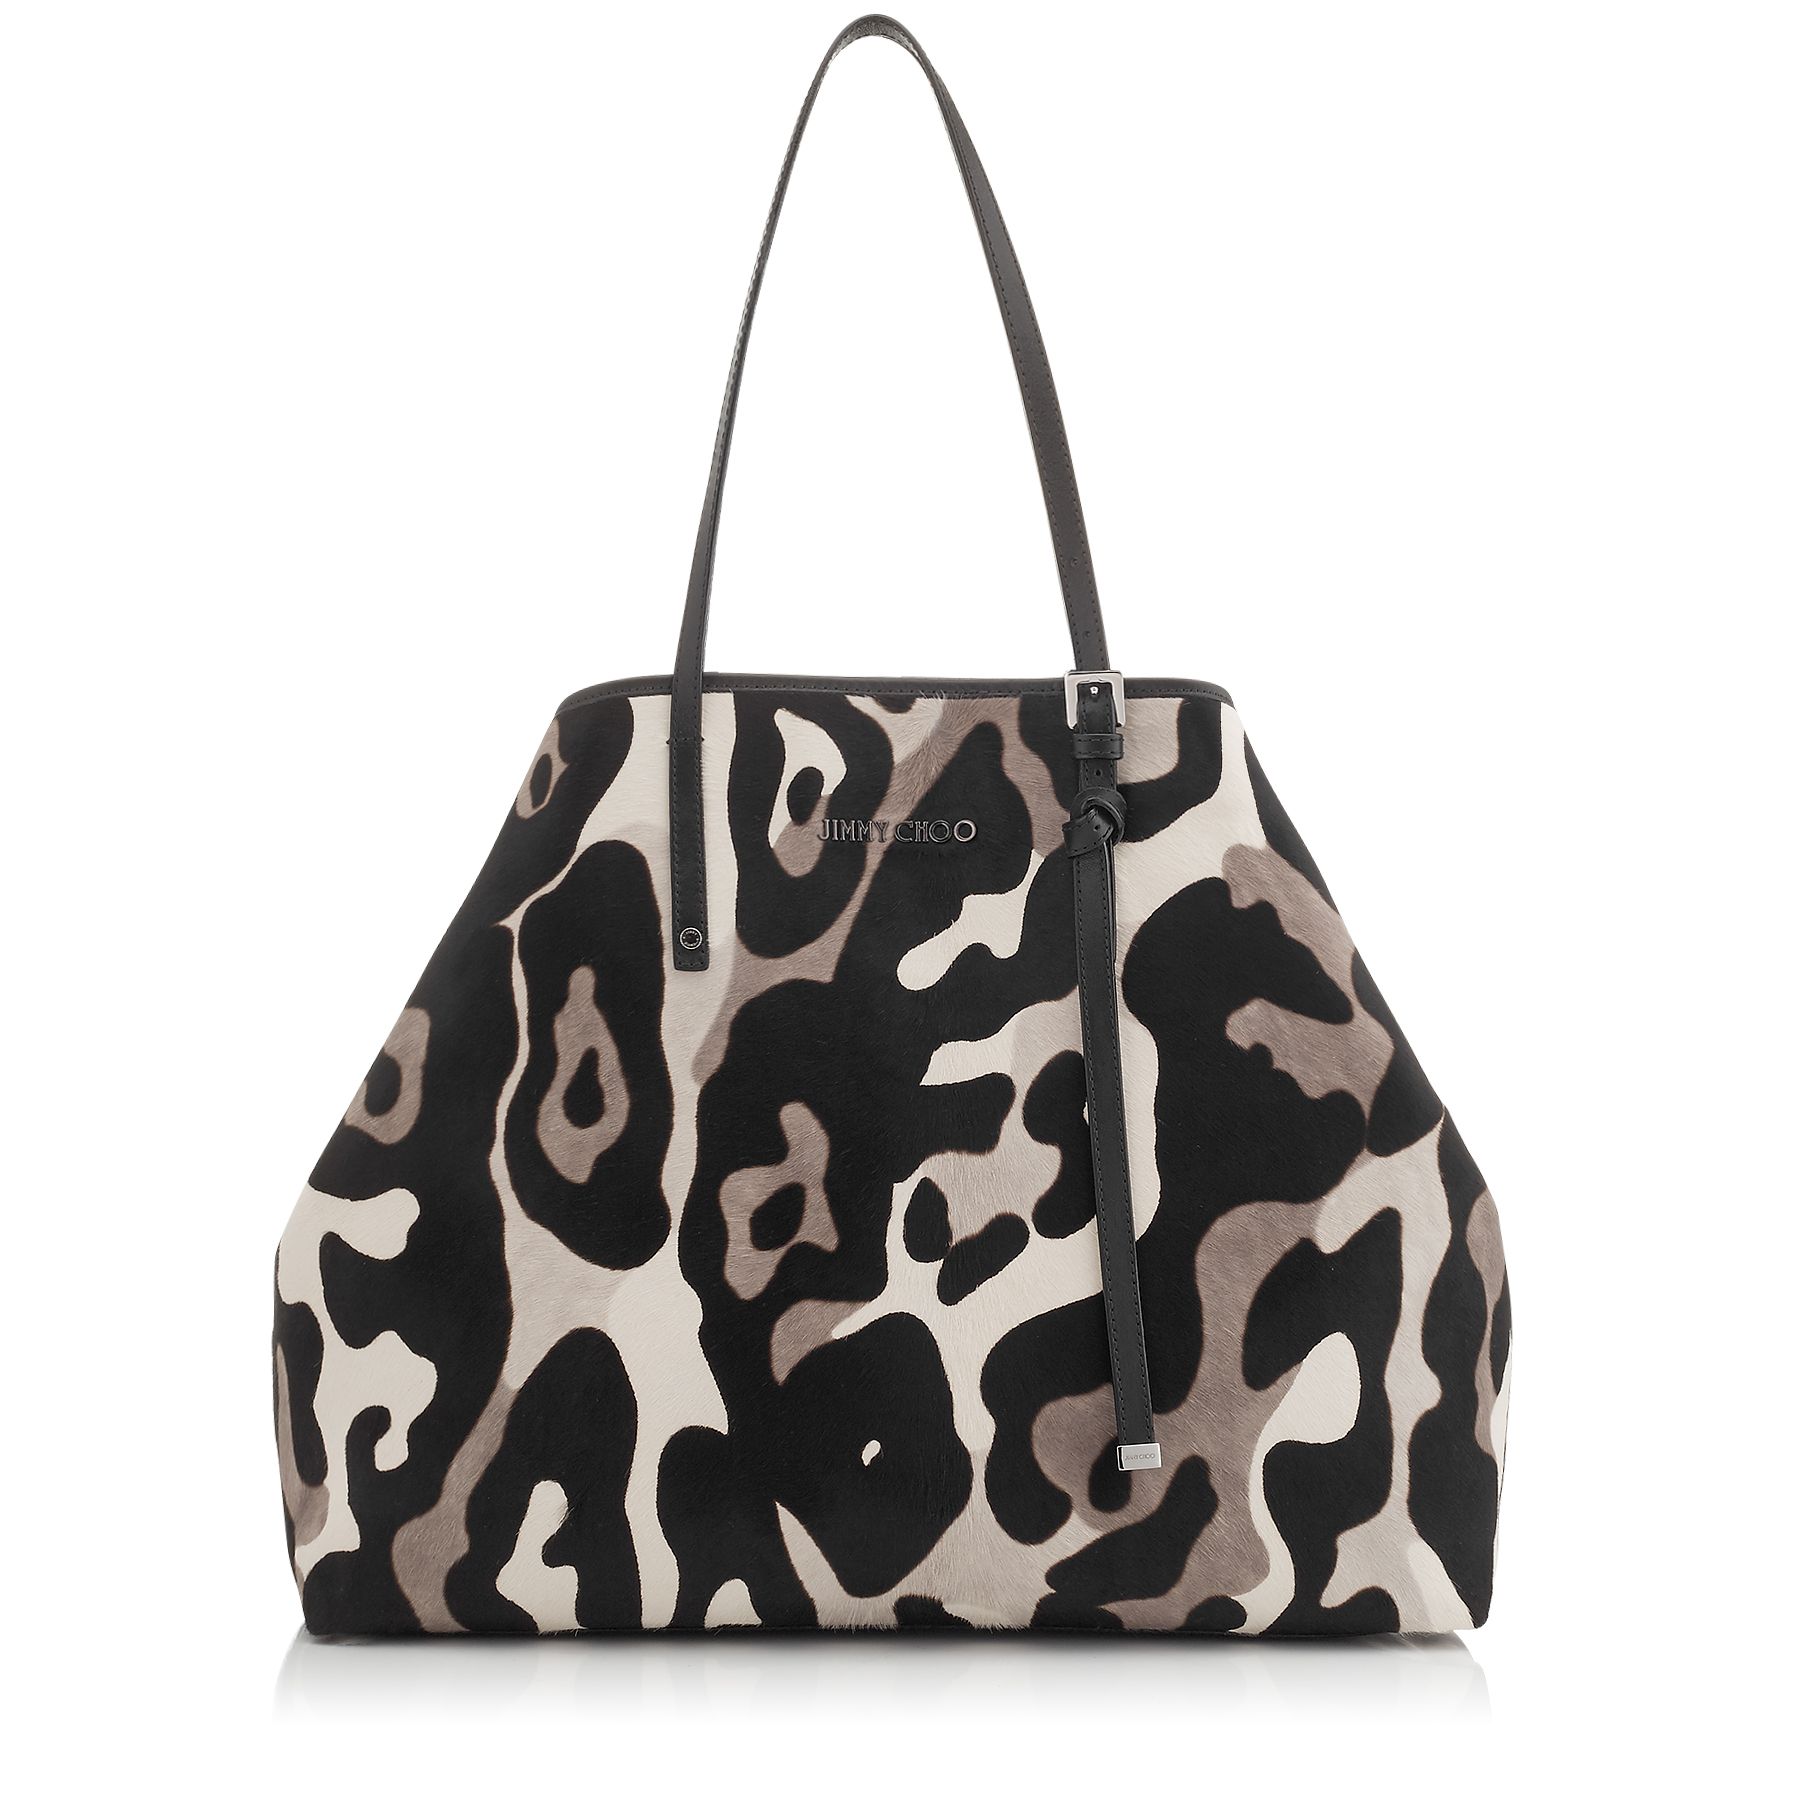 SASHA/L Mink Mix Camoleo Printed Pony Large Tote Bag